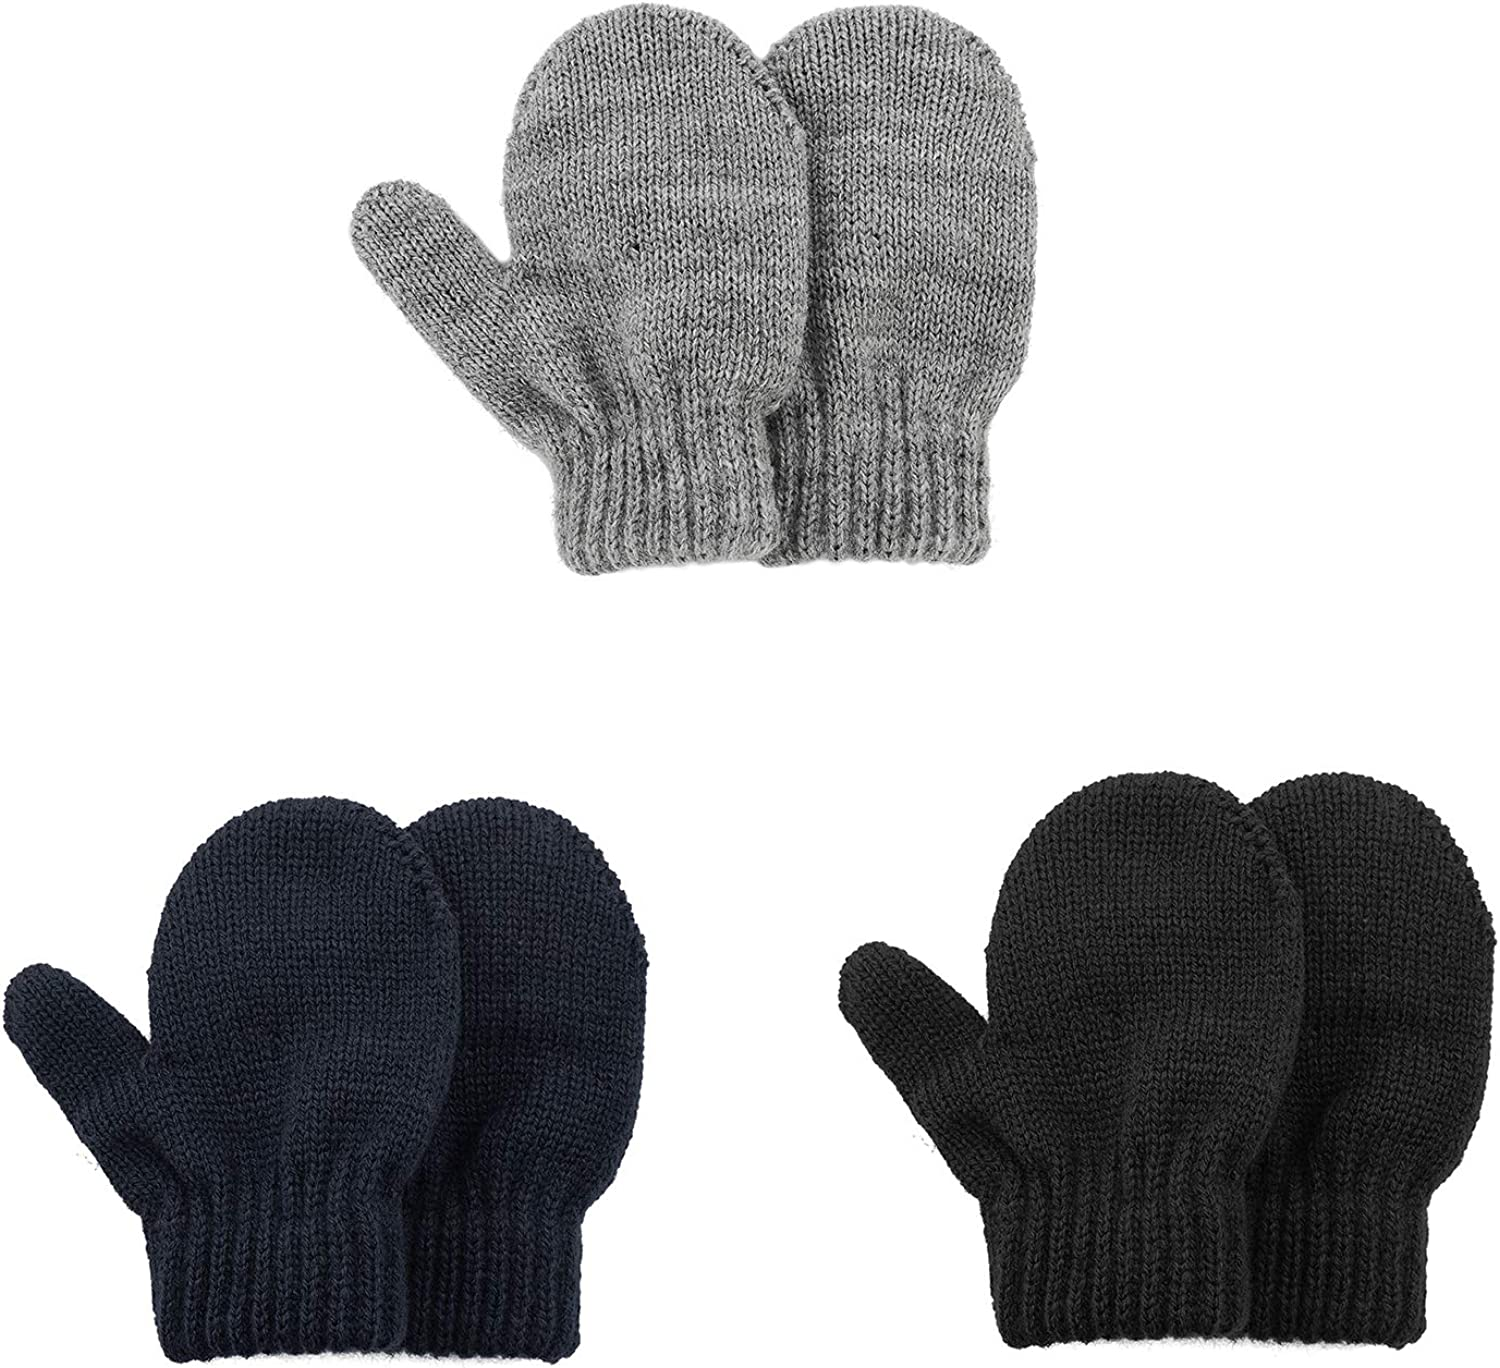 Kids Winter Toddler Mittens Multicolor Soft Knitted Gloves Thick Cold Protection Mitten Color Set 2